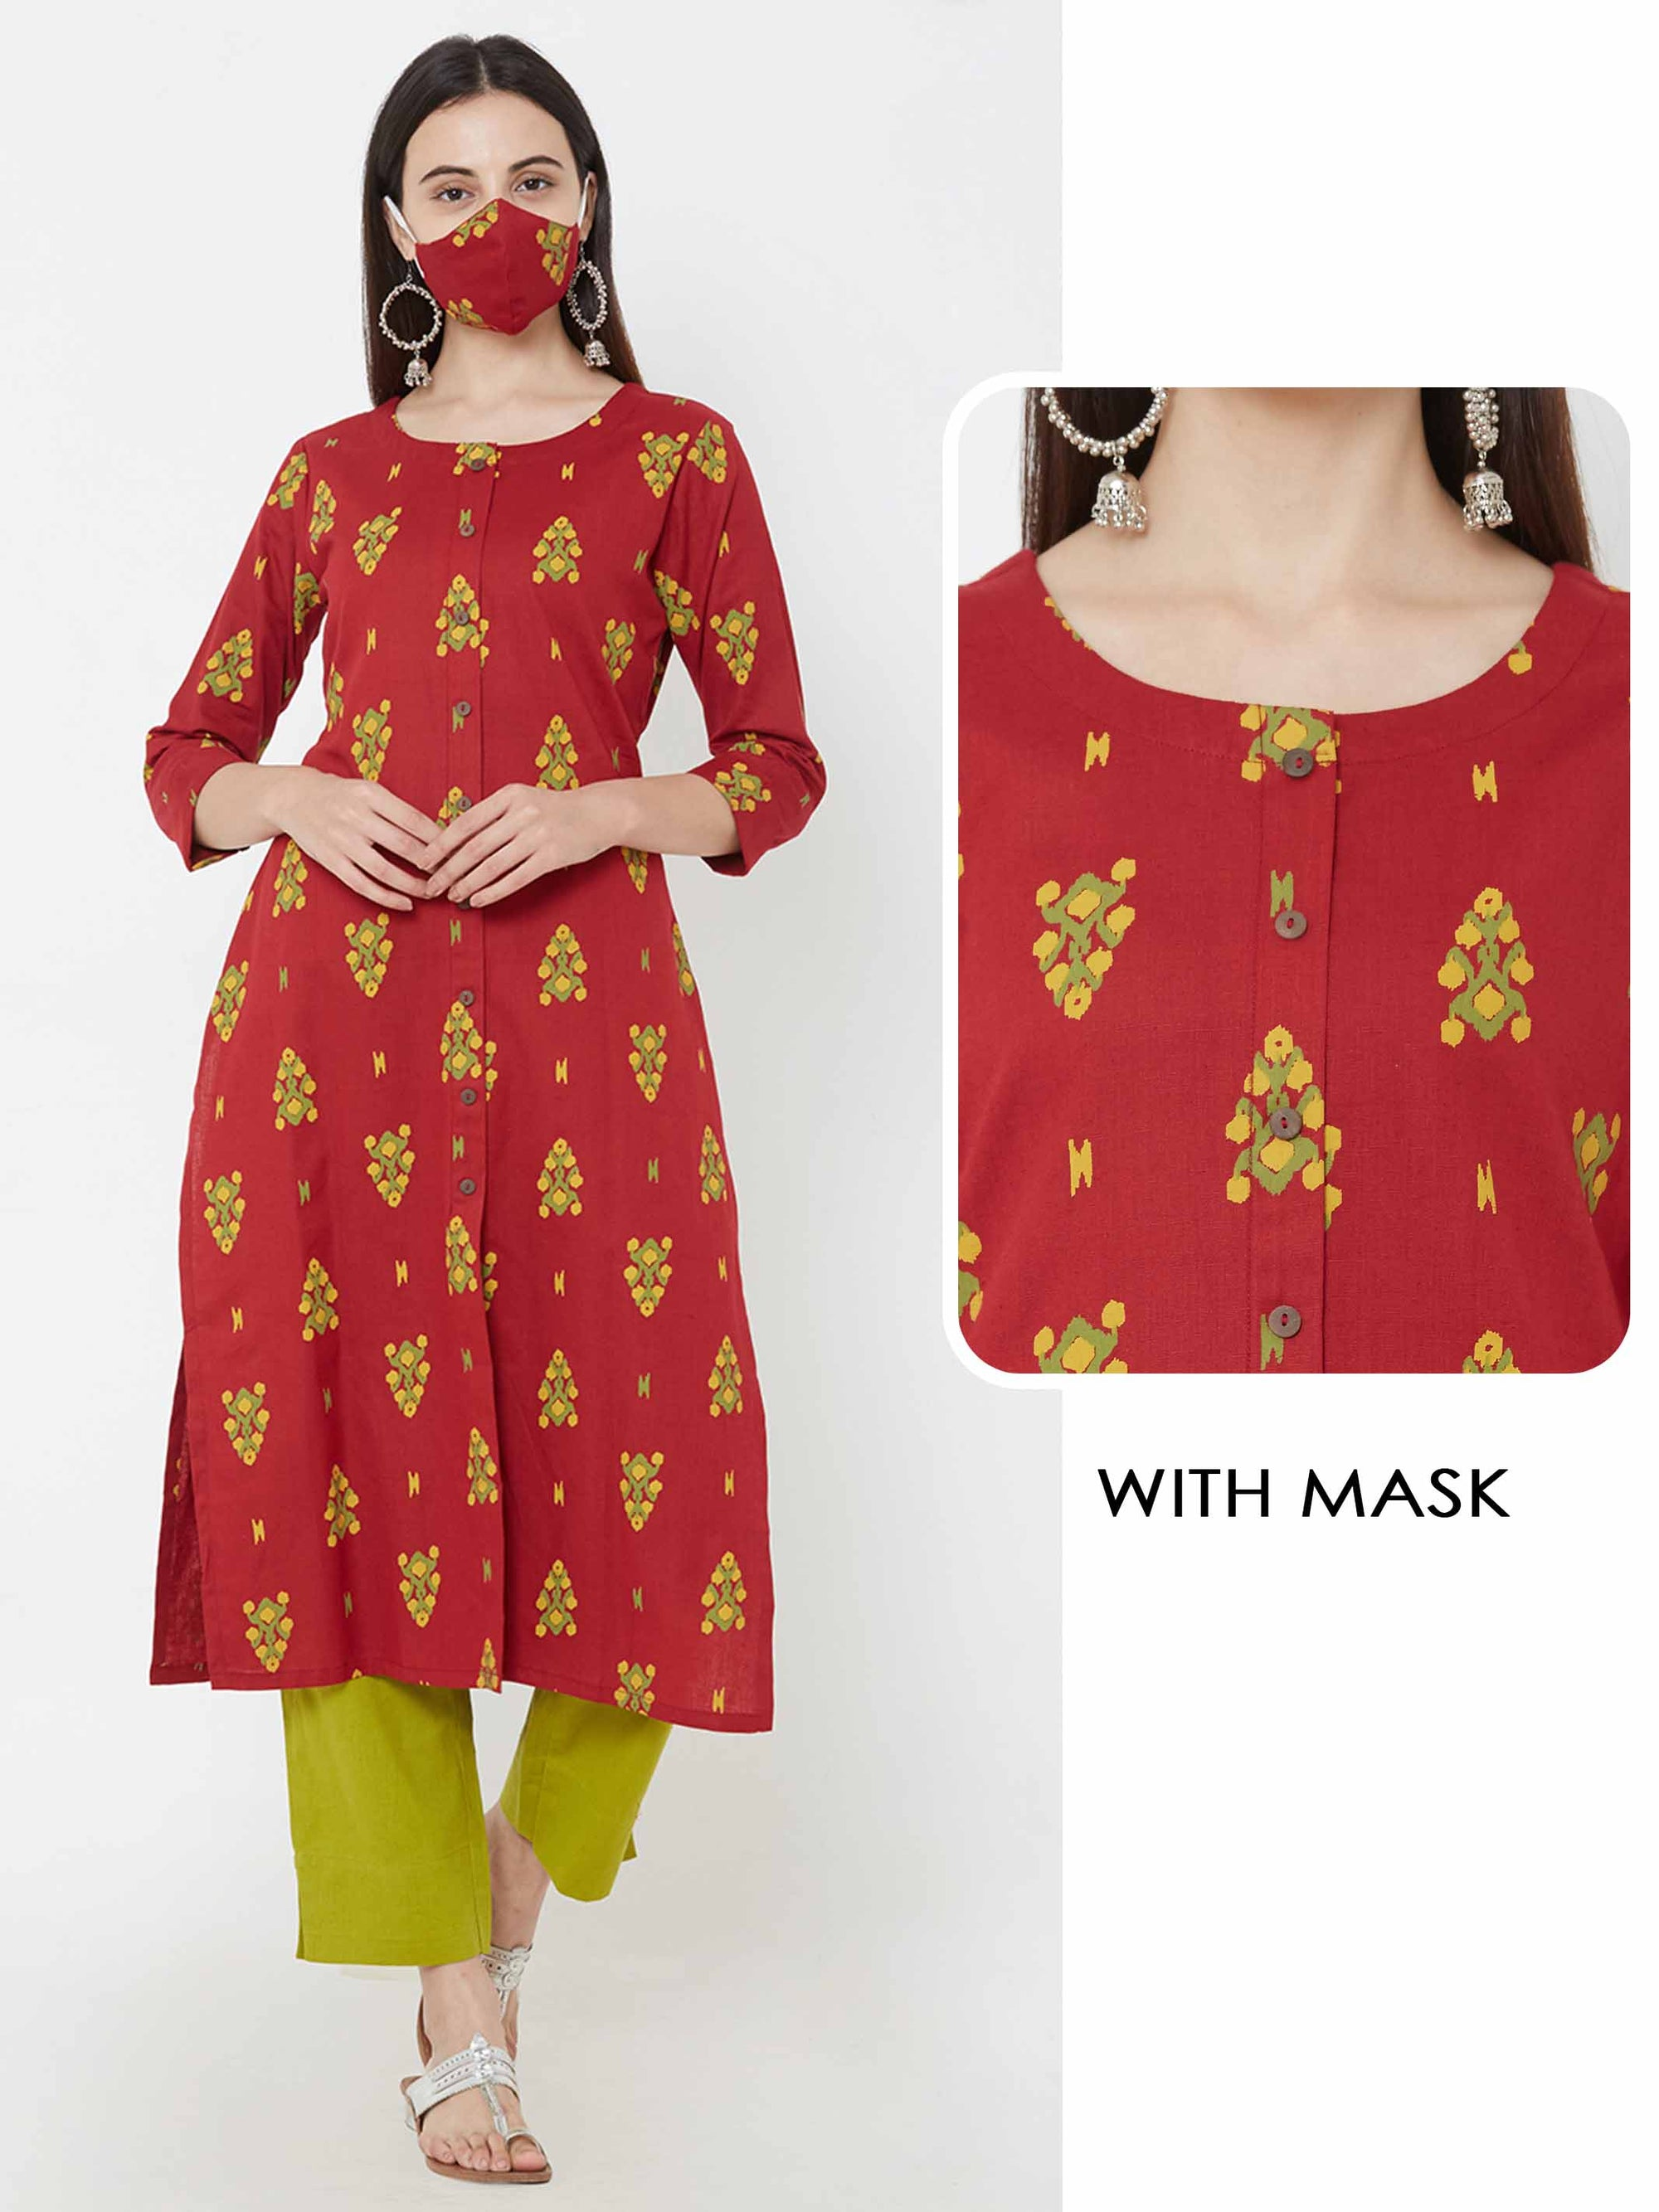 Abstract Ikkat printed Kurta & matching mask – Maroon